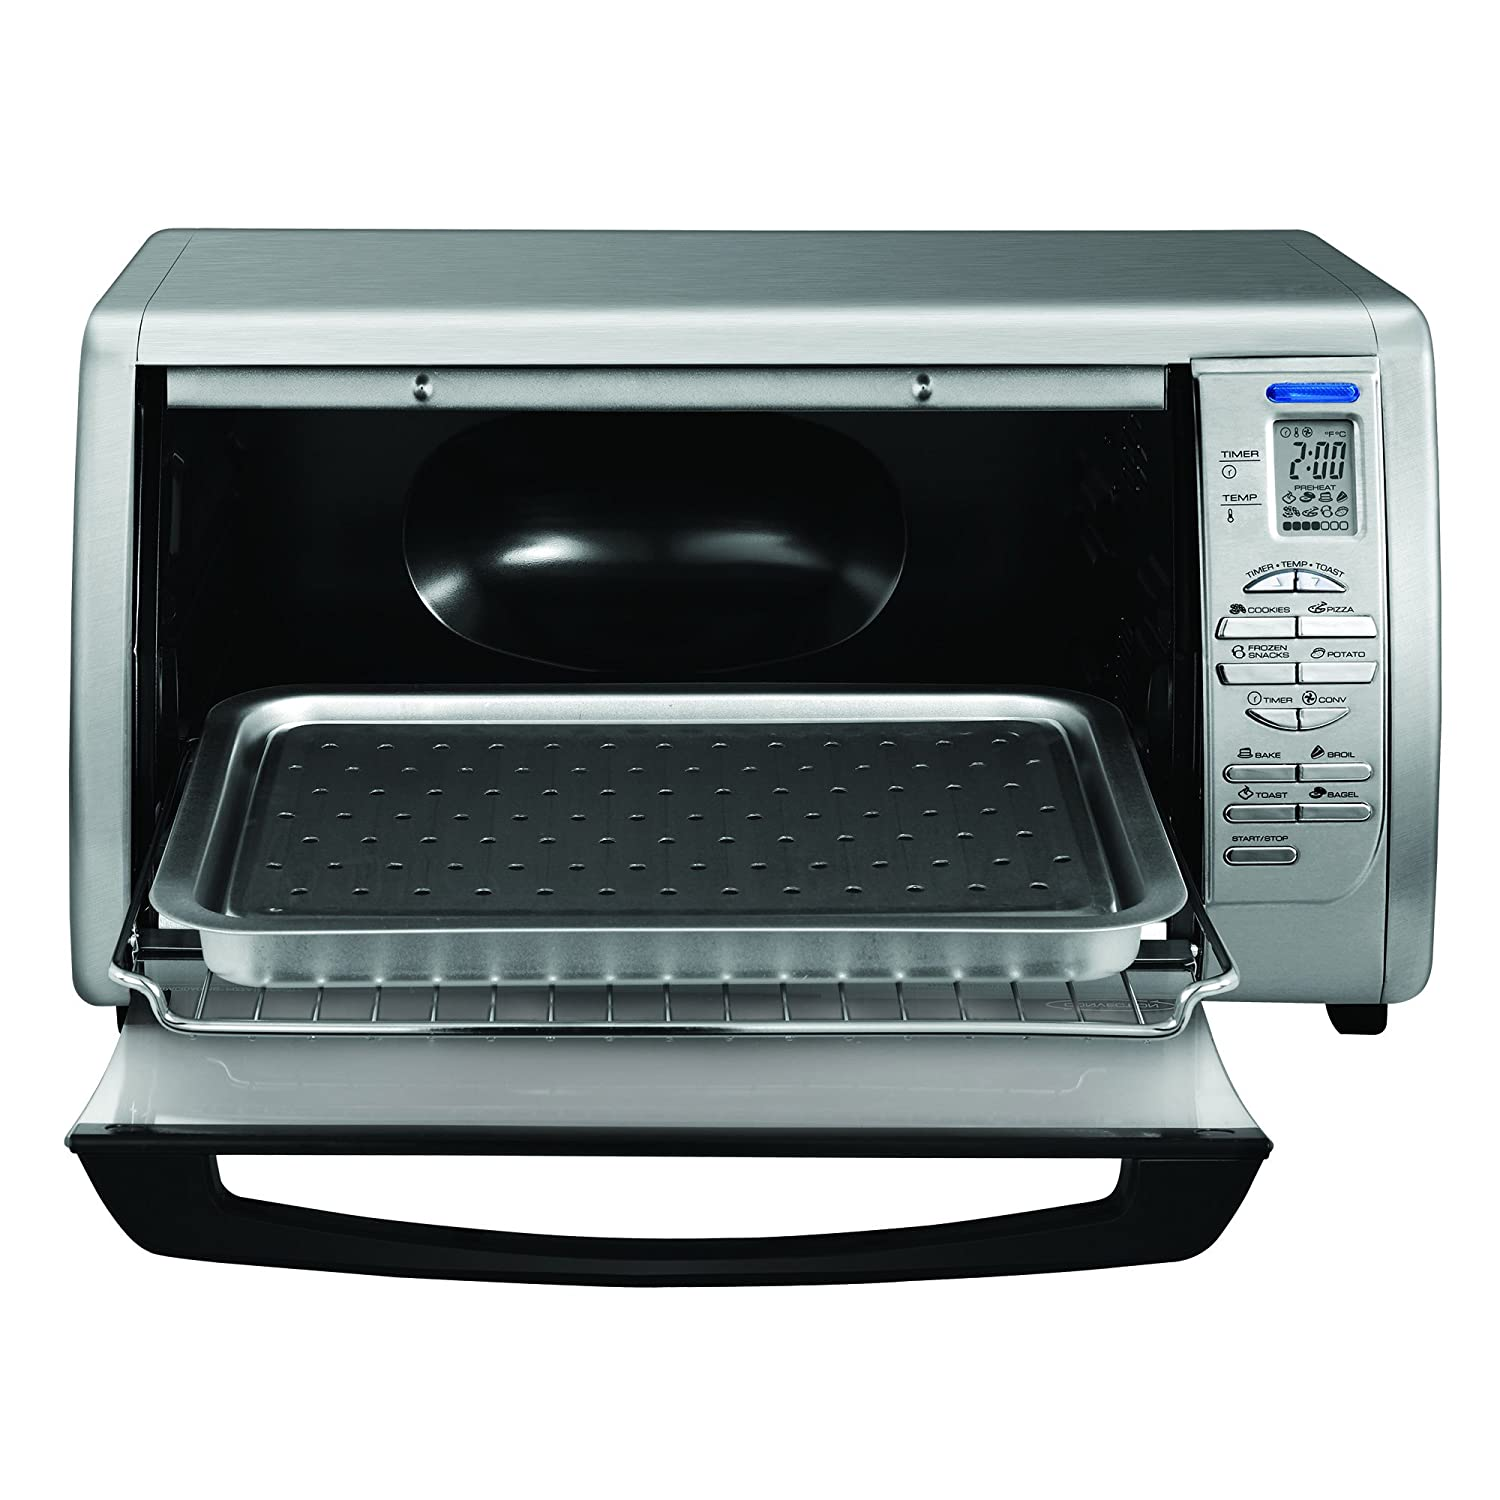 Black Toaster Ovens Decker Cto6335s Stainless Steel